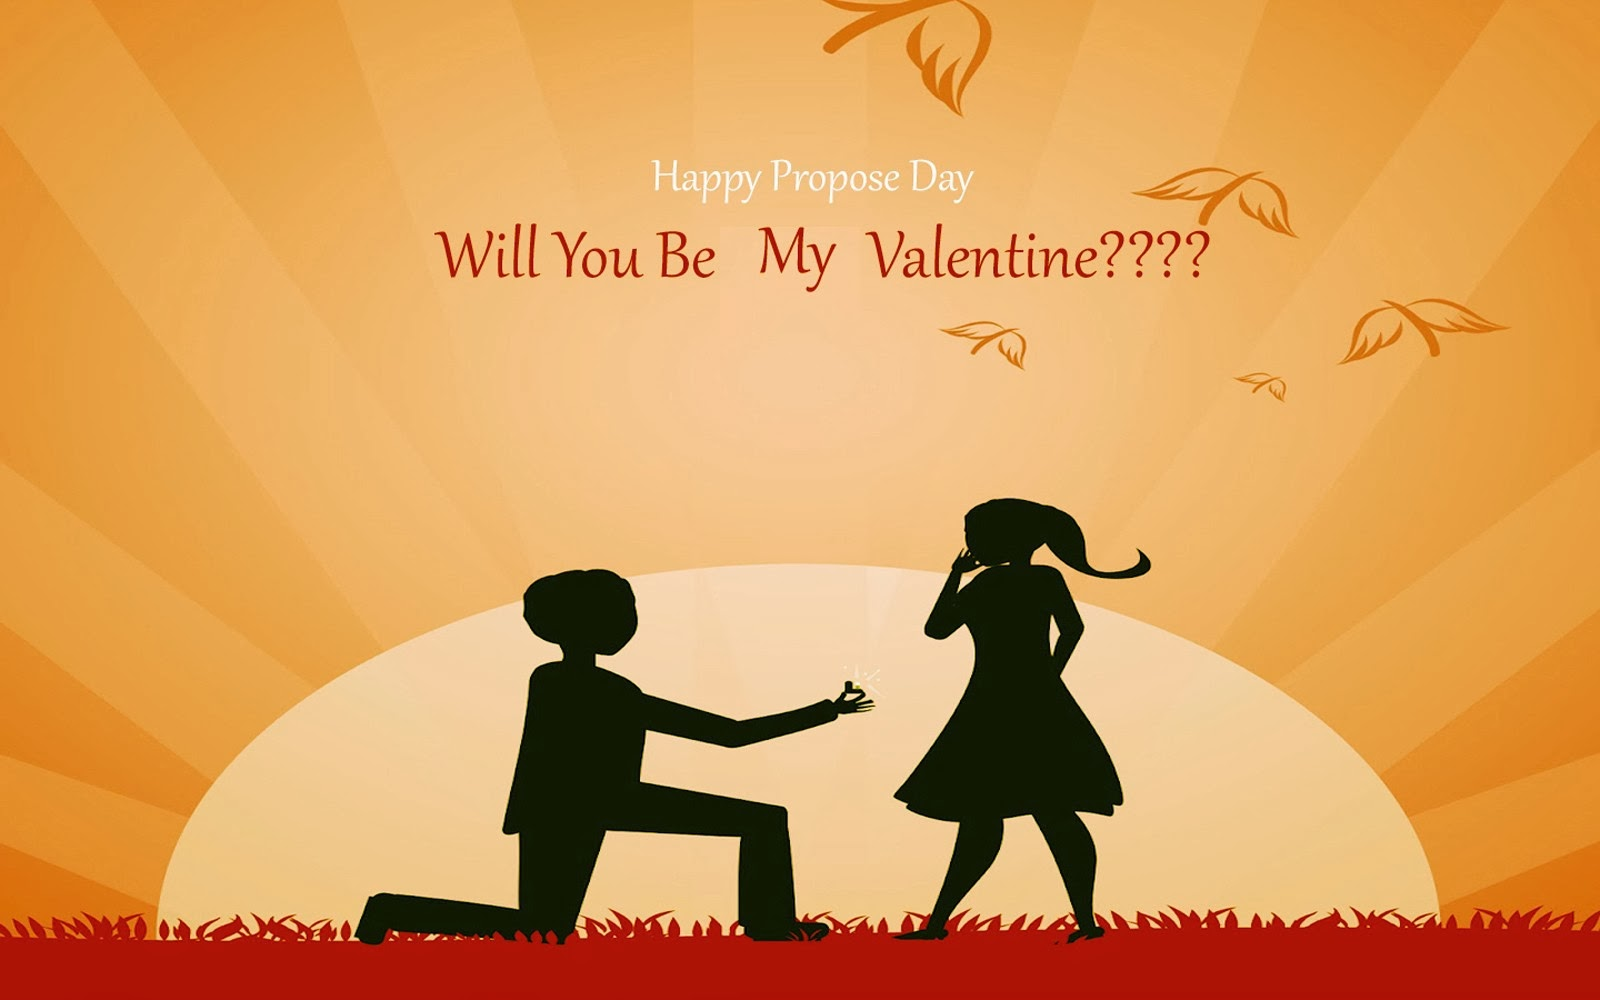 Happy Propose Day 2014 Hd Wallpapers Valentines Day Hd Wallpapers